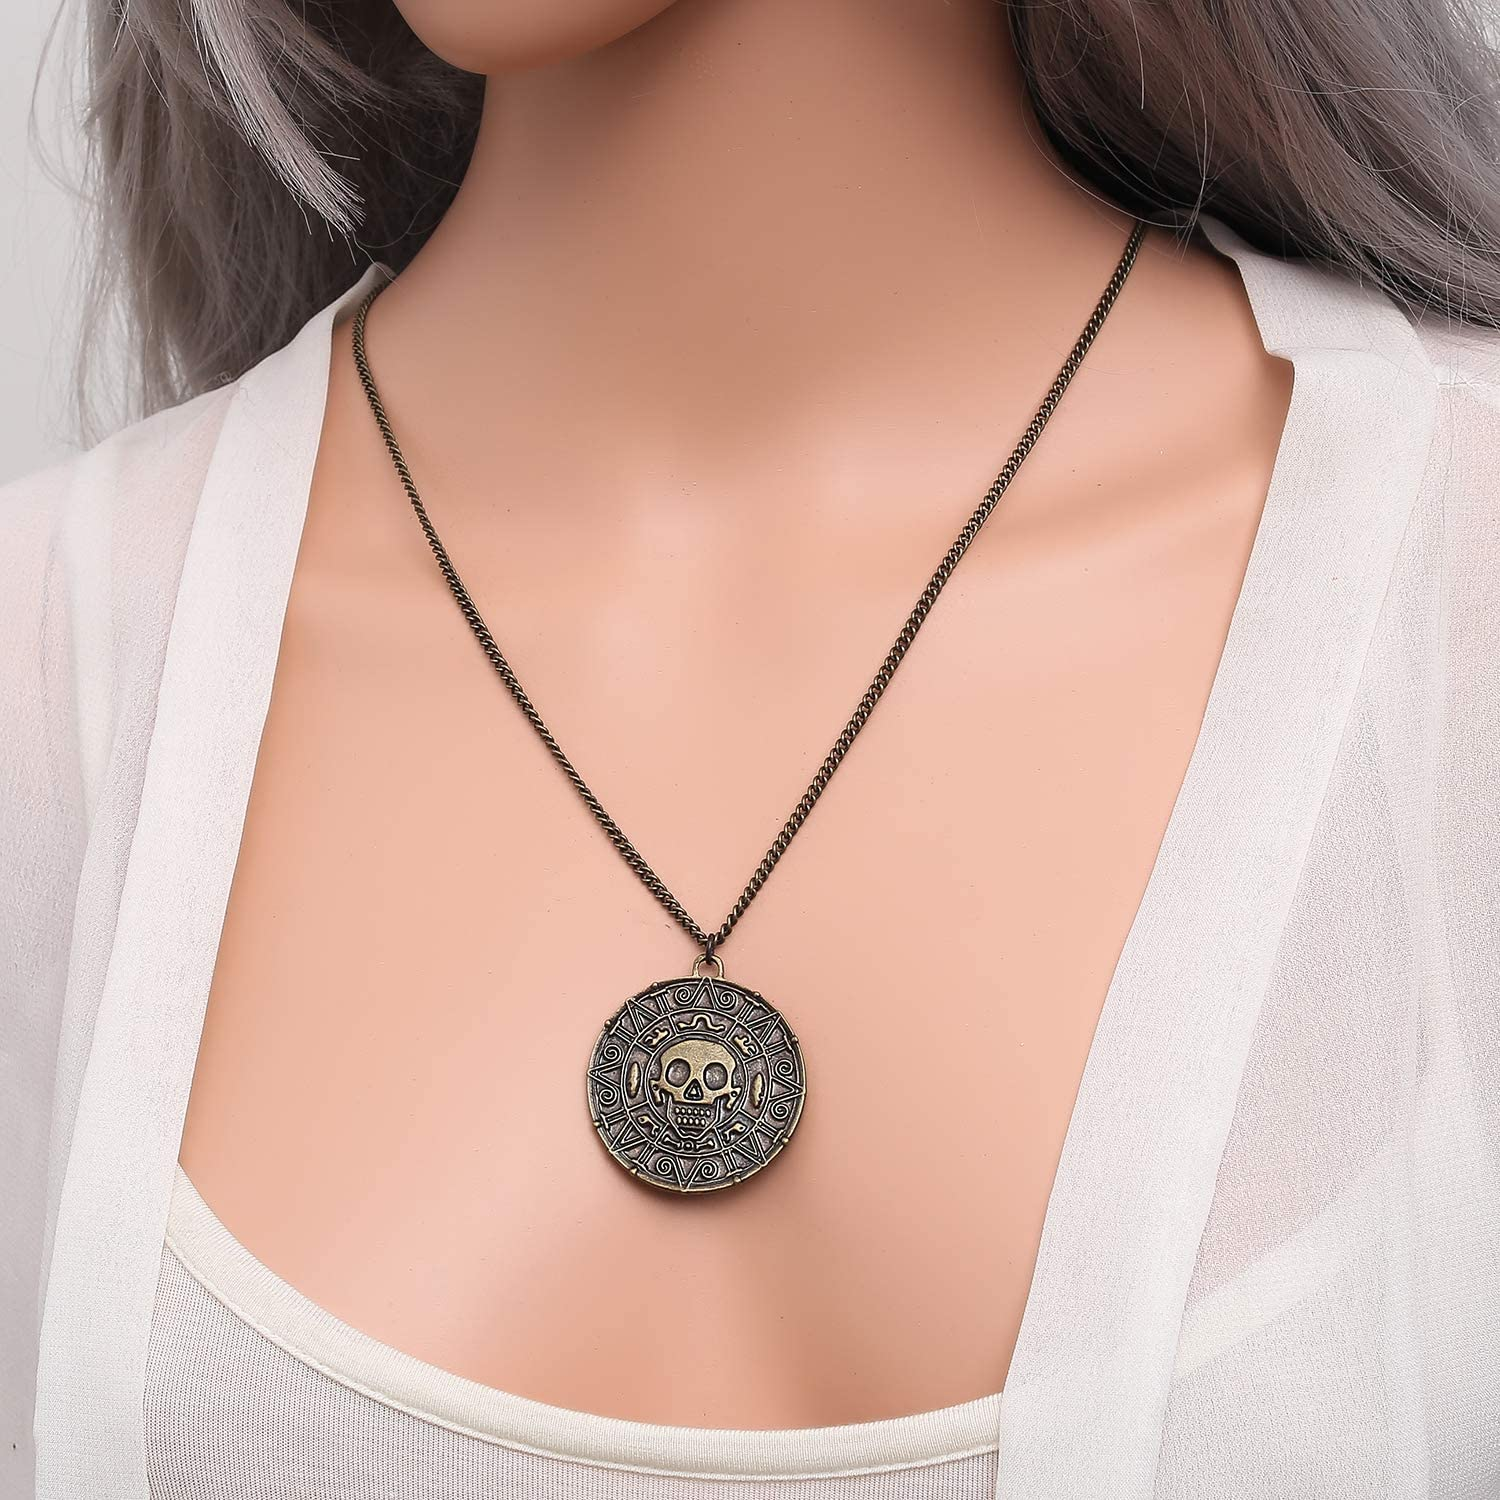 01003817 lureme/® Inspired by Pirates of The Caribbean Movies Cursed Aztec Coin Medallion Necklace Skull Necklace